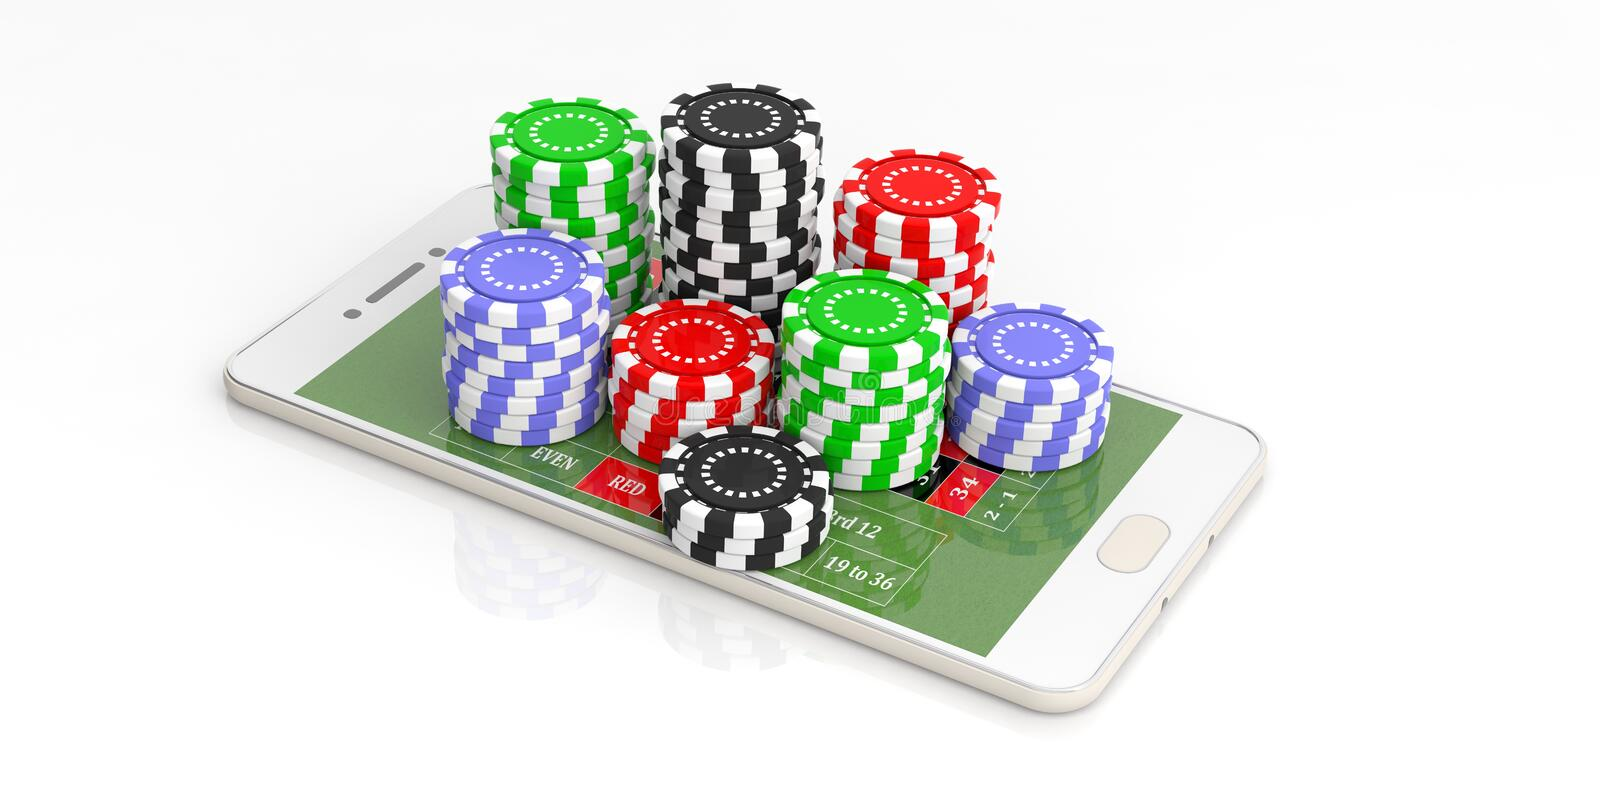 Casino chips and smartphone on white background. 3d illustration. Online casino concept. Chips and smartphone on white background. 3d illustration vector illustration